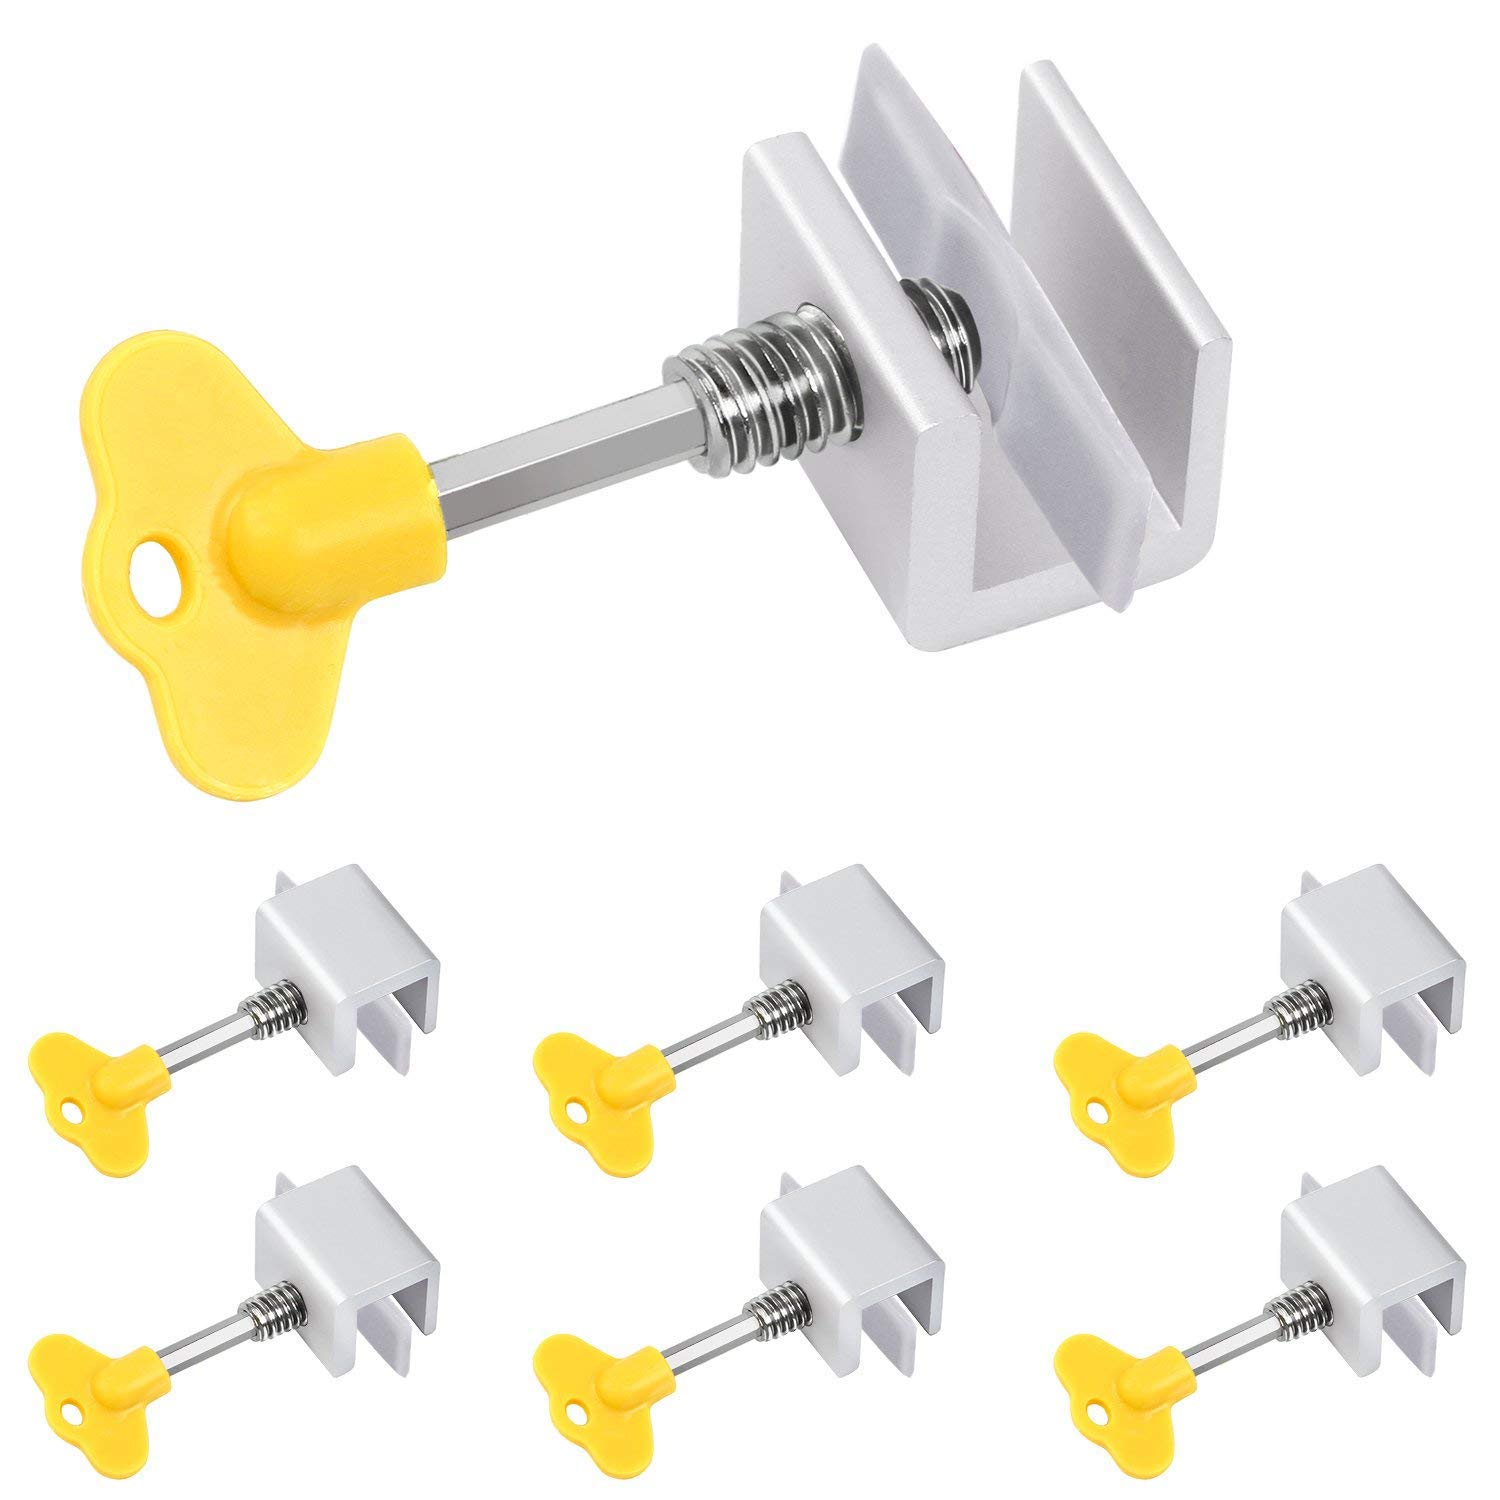 Window Locks-Sliding Window-Sliding Window Lock-Window Stop-Adjustable Sliding Window Locks Stop Door Frame Security Locks Keys【8 Pieces】